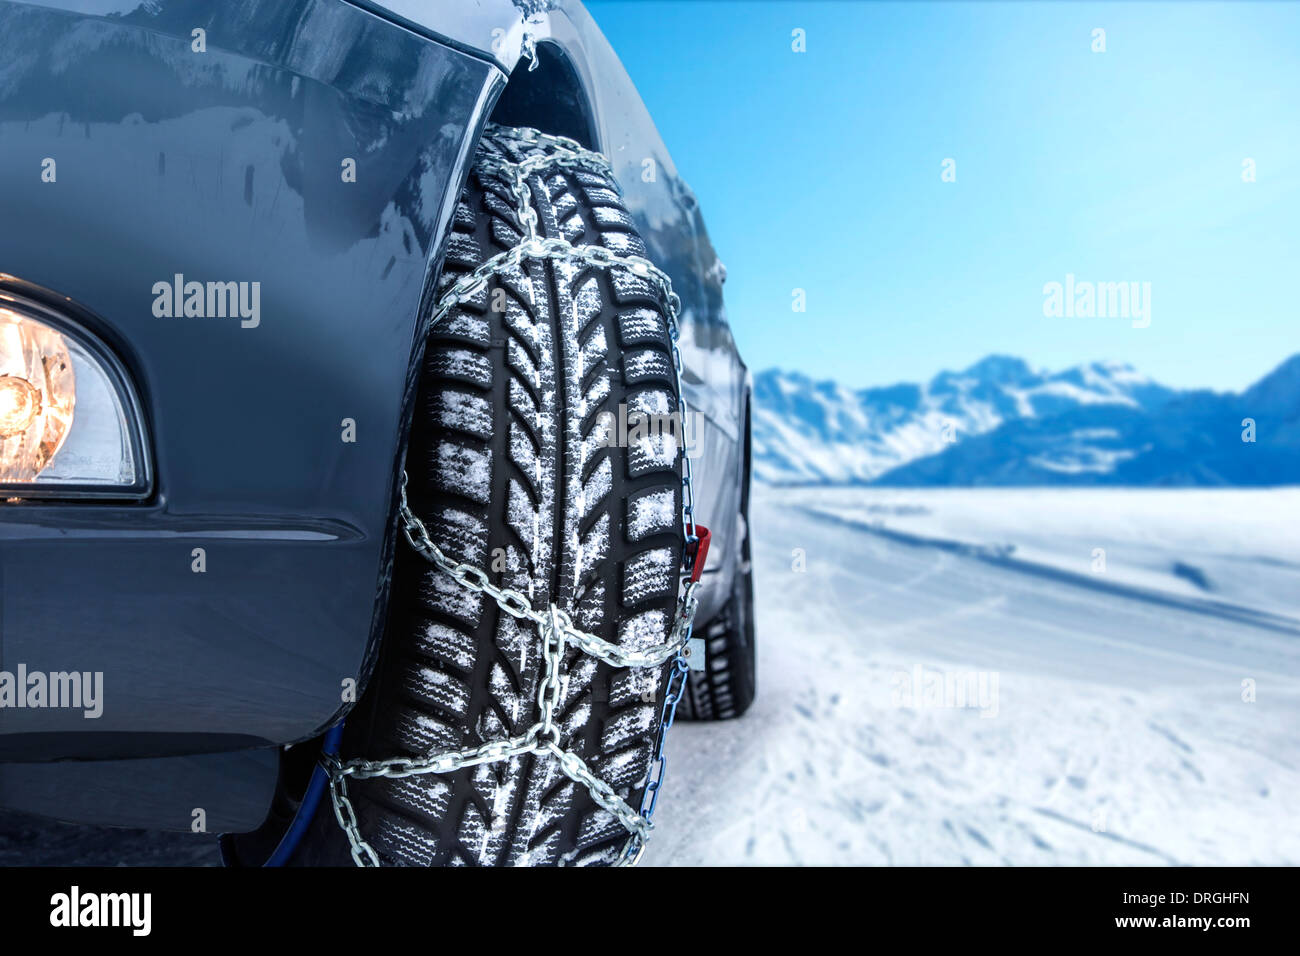 Car with mounted snow chains in wintry environment - Stock Image